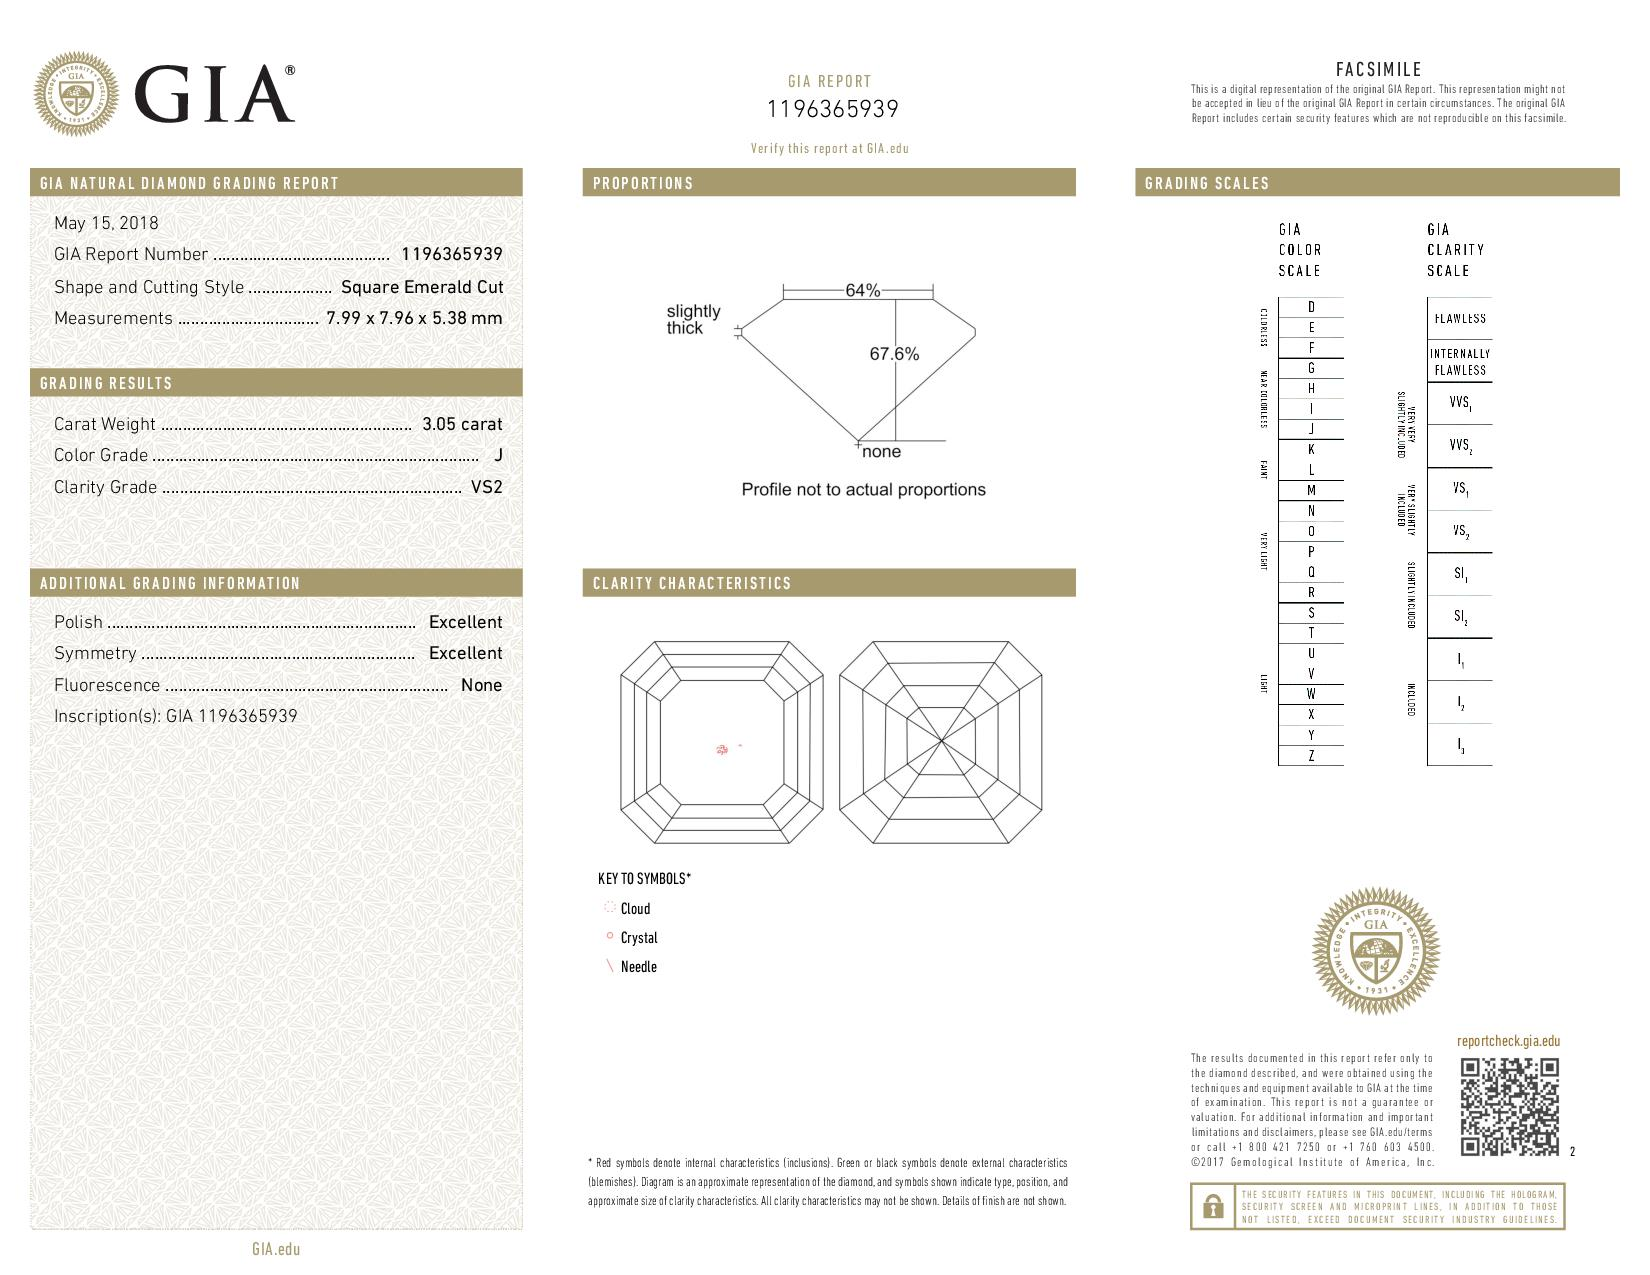 This is a 3.05 carat asscher shape, J color, VS2 clarity natural diamond accompanied by a GIA grading report.